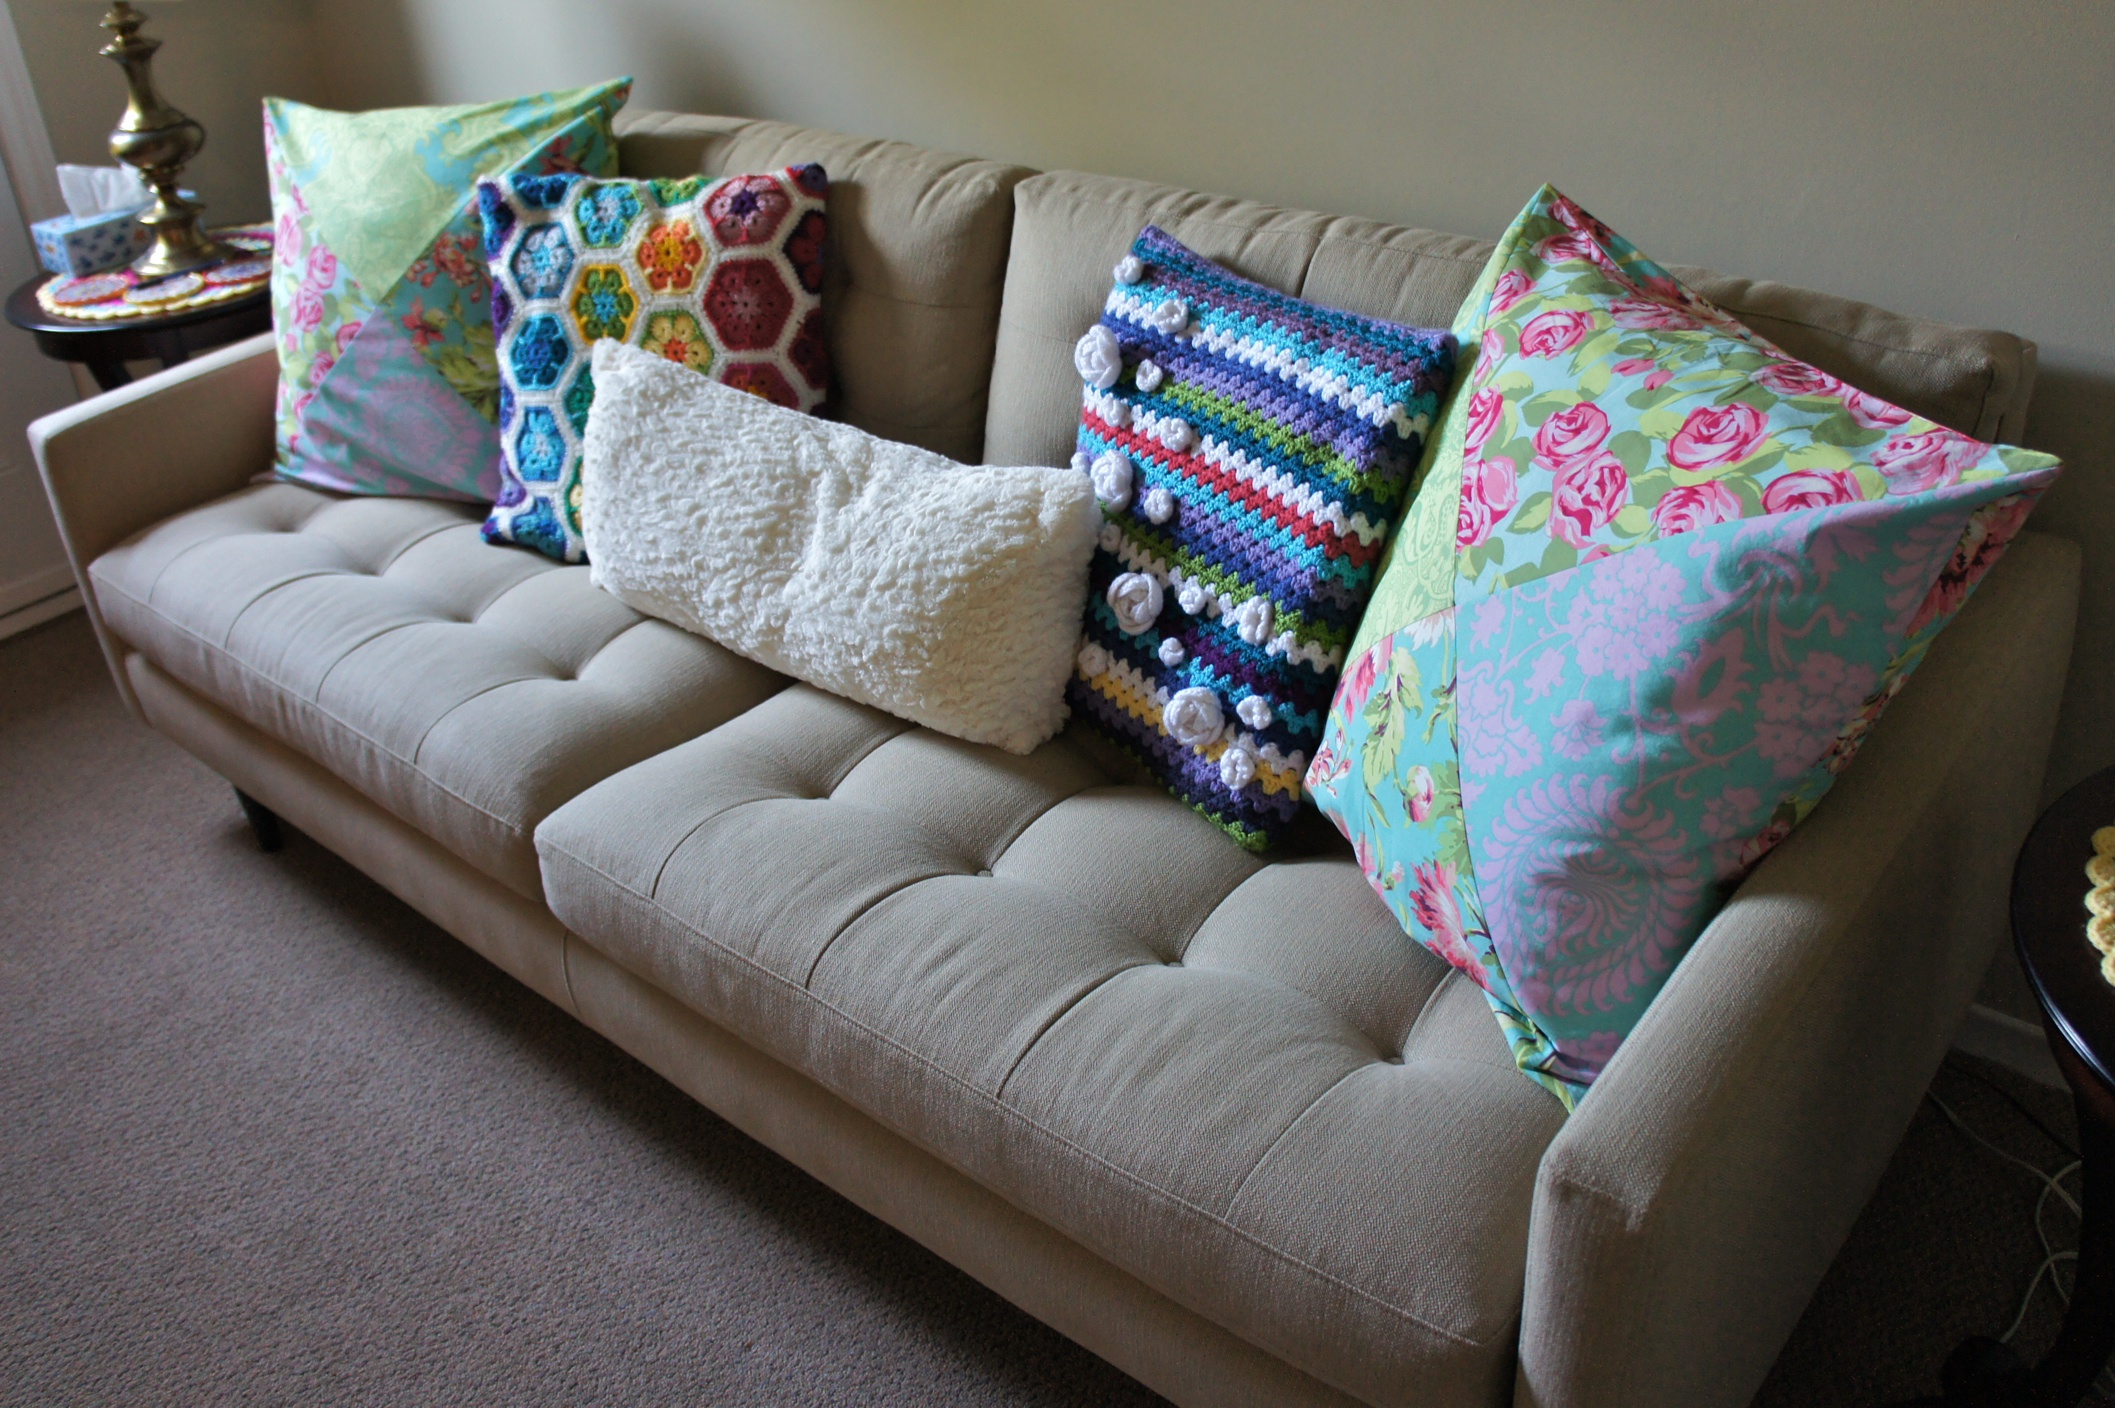 Home Decor Sony Dsc ~ How Many Throw Pillows On A Sofa